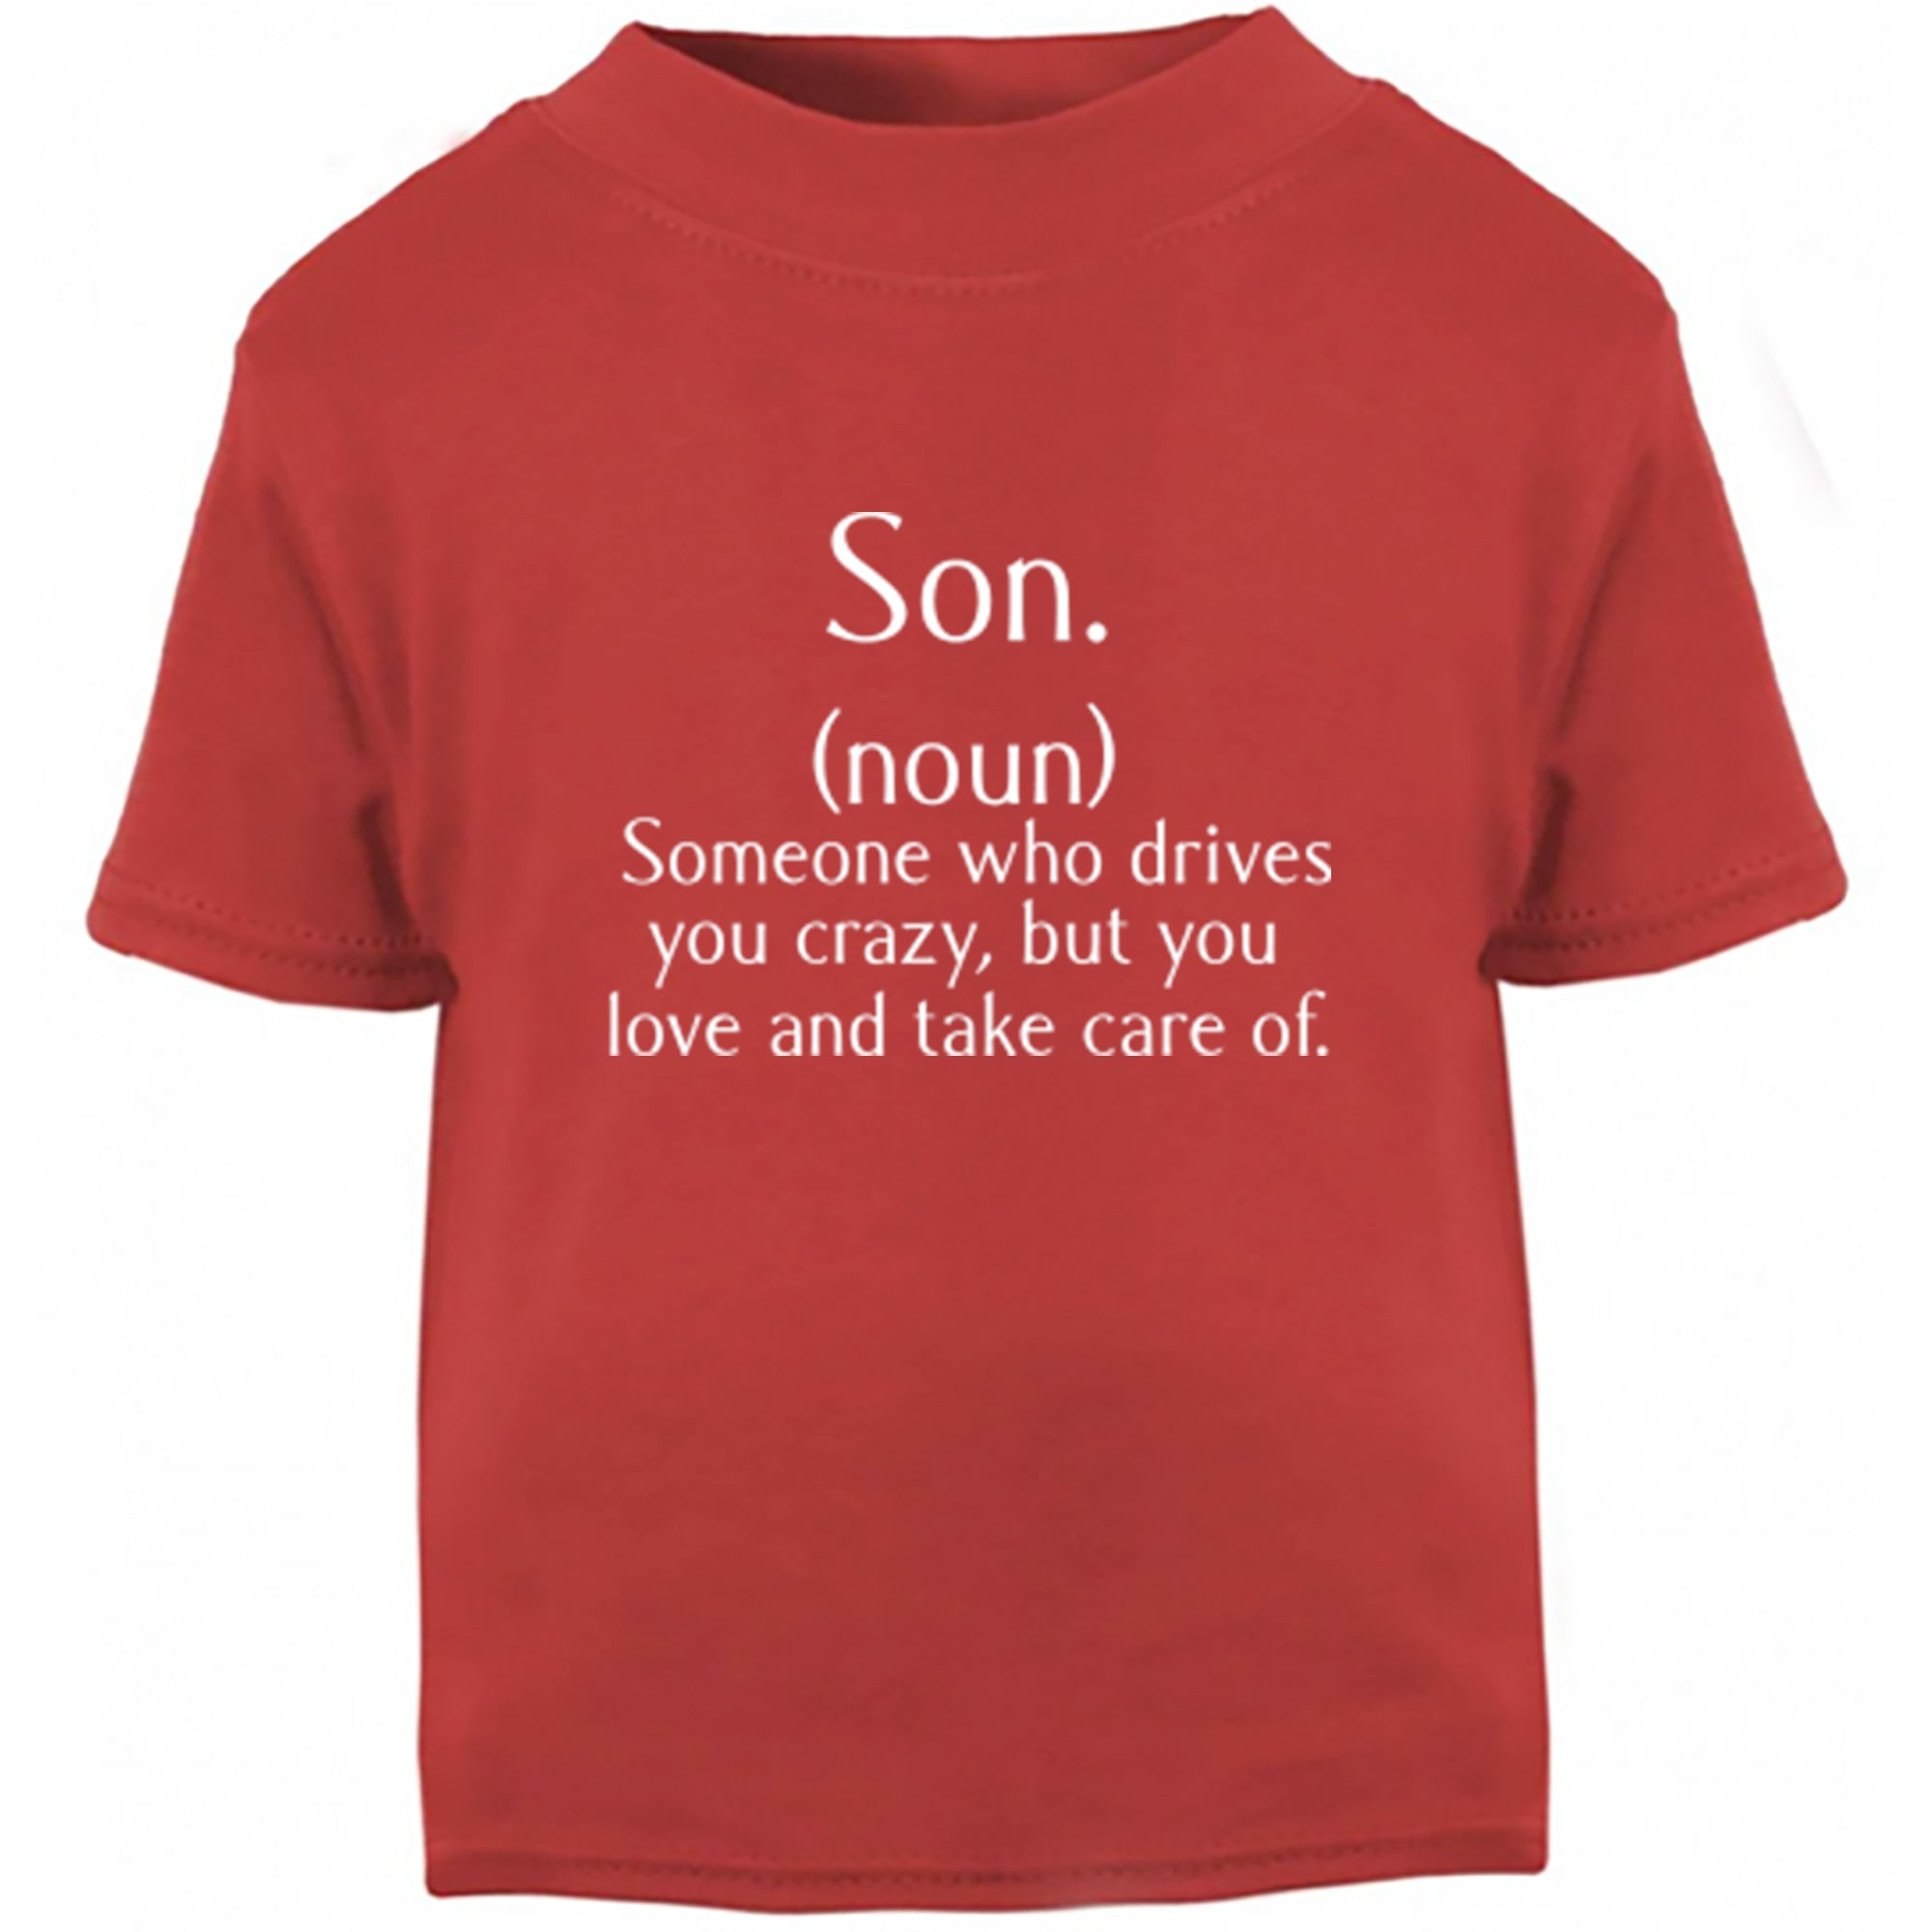 Son Definition Childrens Ages 3/4-12/14 Unisex Fit T-Shirt S0306 - Illustrated Identity Ltd.